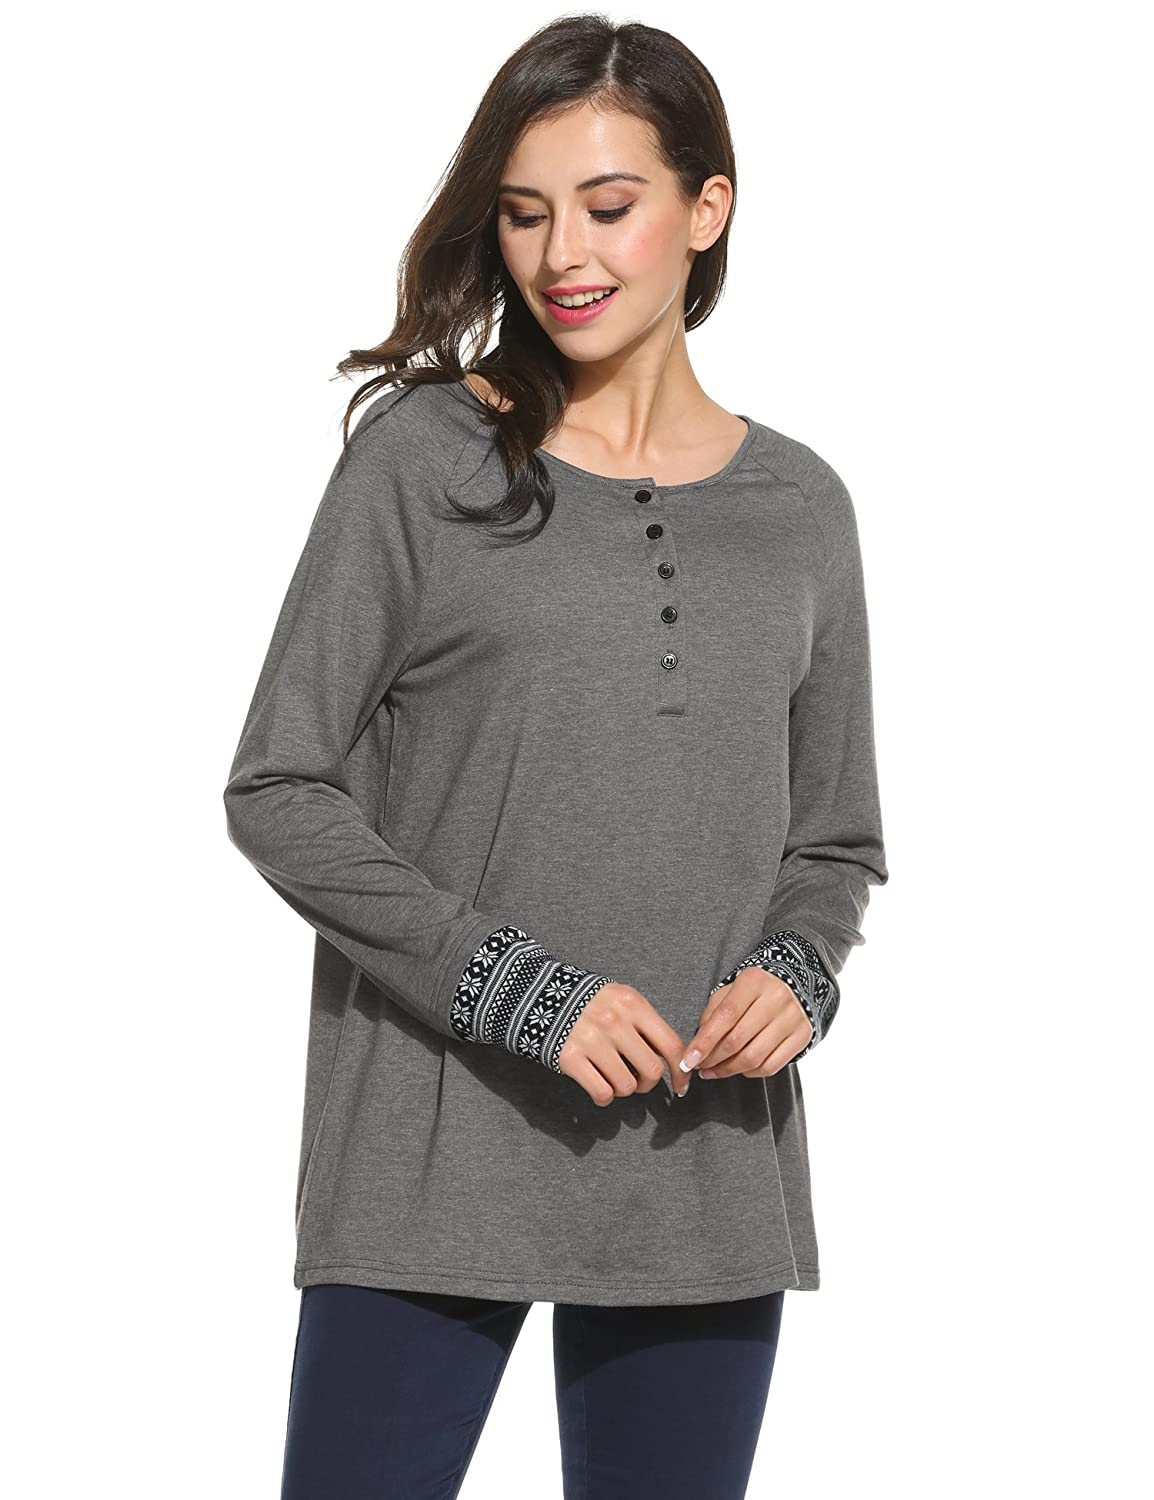 Meaneor Womens Round Neck Long Sleeve Blouse Geometric Print Loose T-Shirt Top